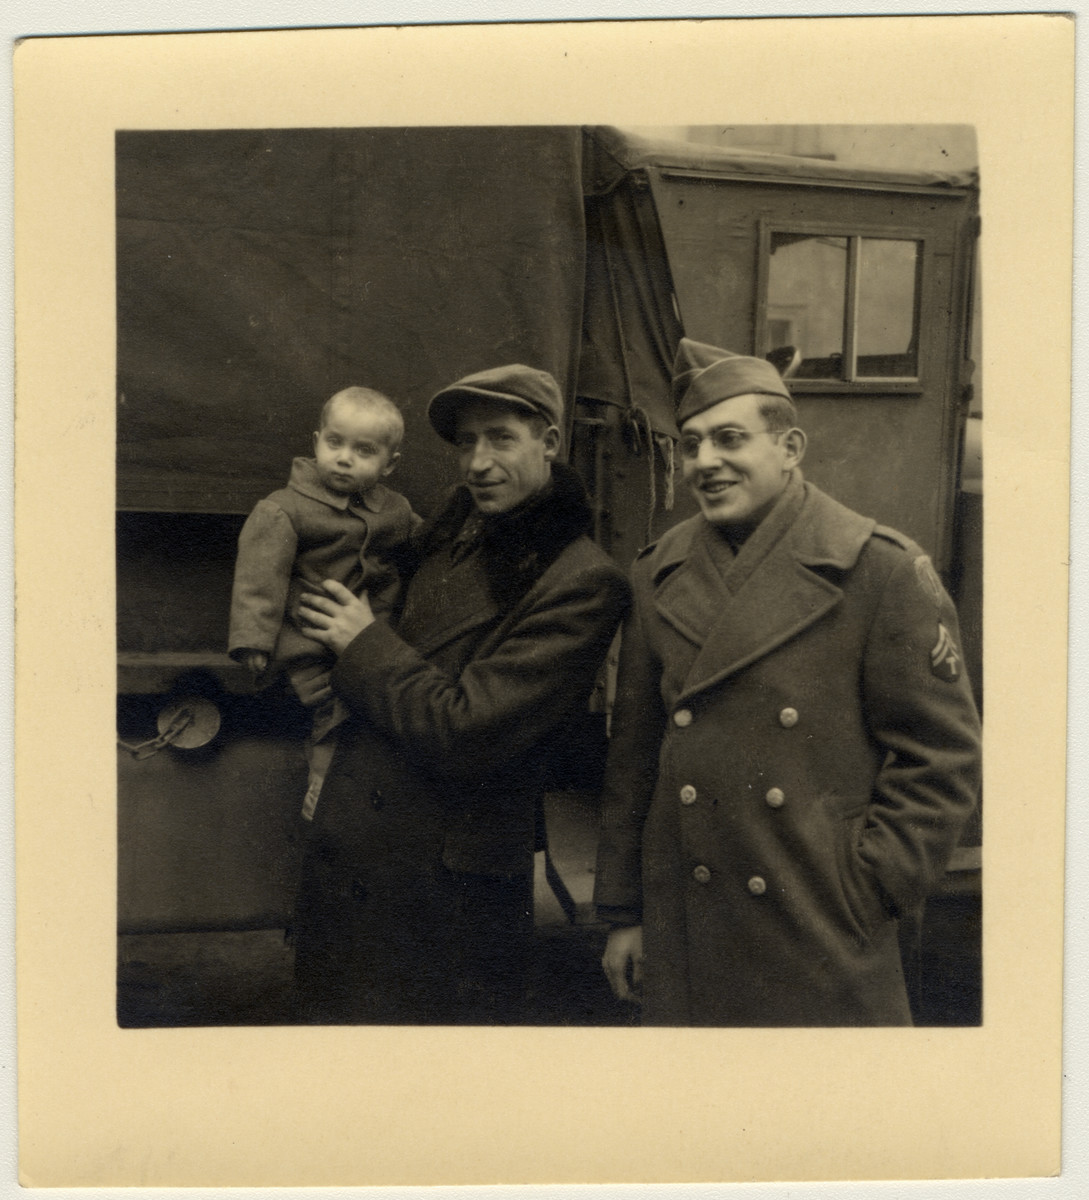 A member of the Frankfurt Jewish GI Council poses with a Jewish displaced person holding his young child.